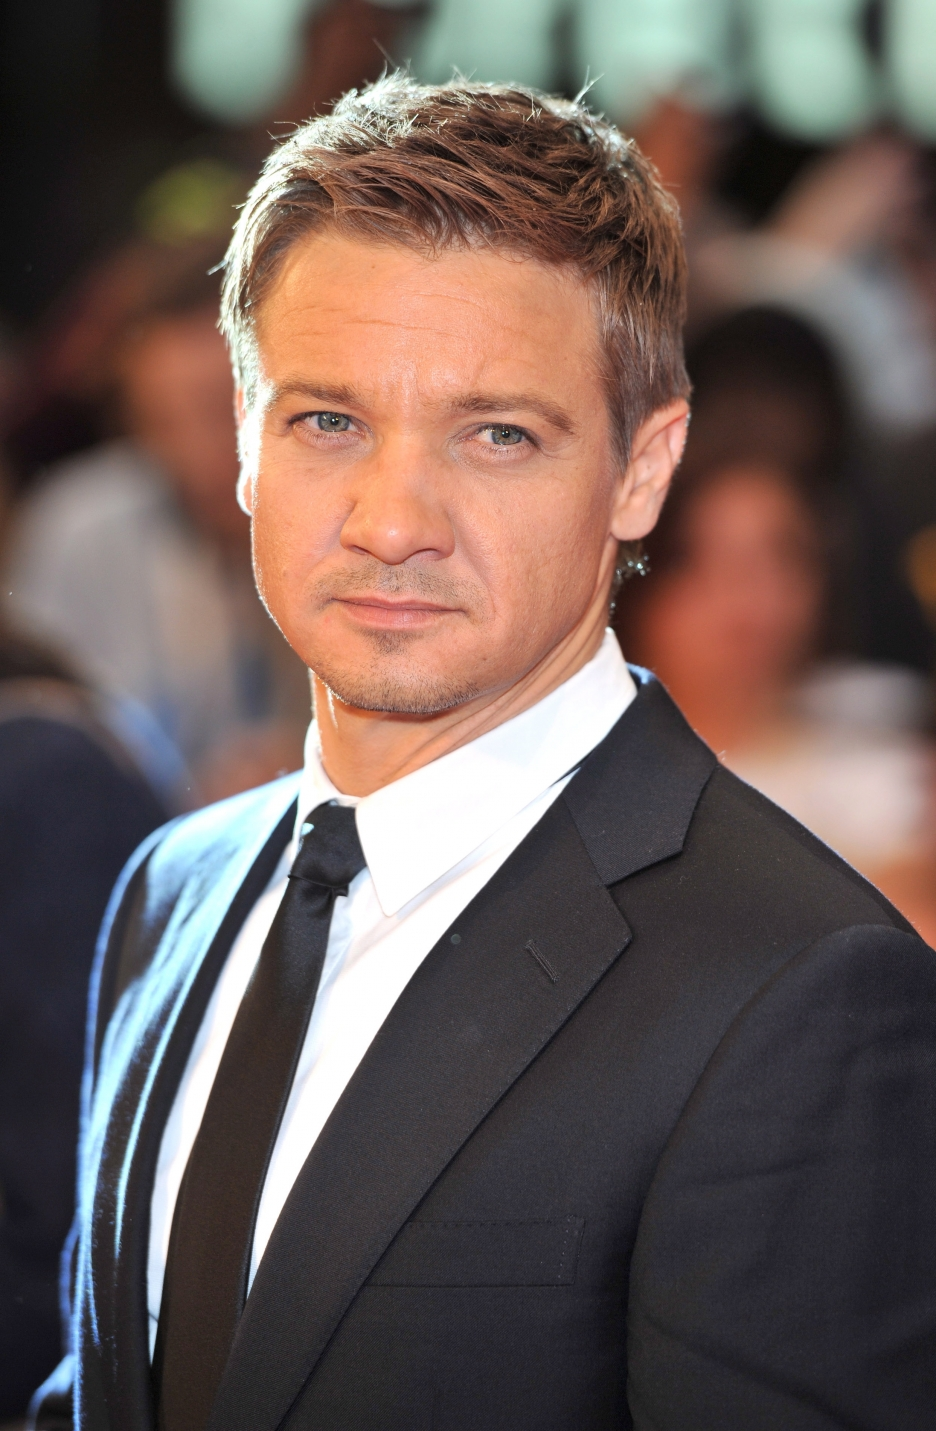 Jeremy Lee Renner is a...